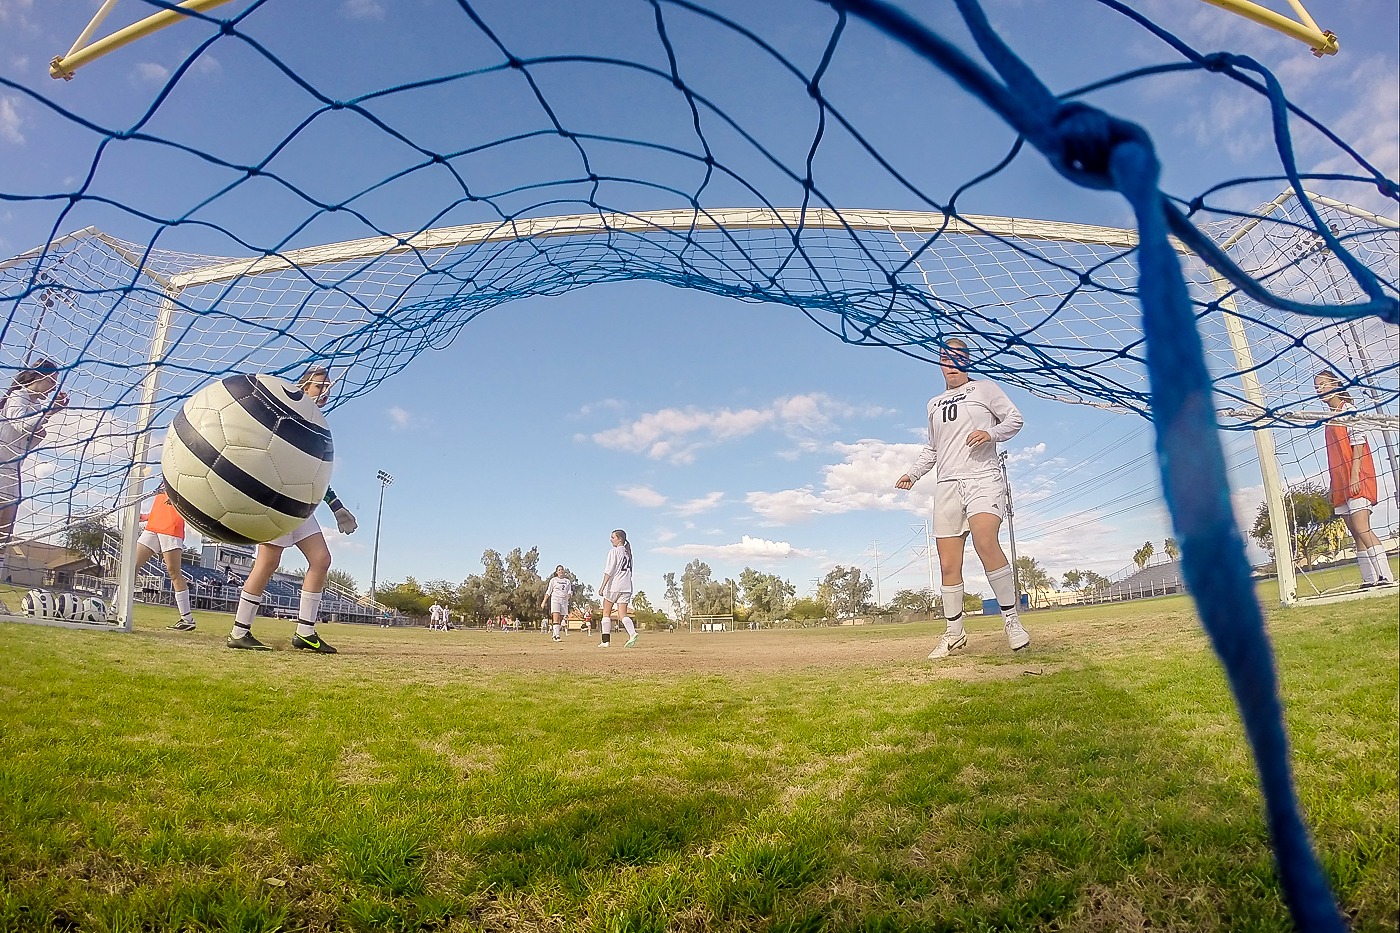 VC soccer girls prevail over Horizon Honors H.S.